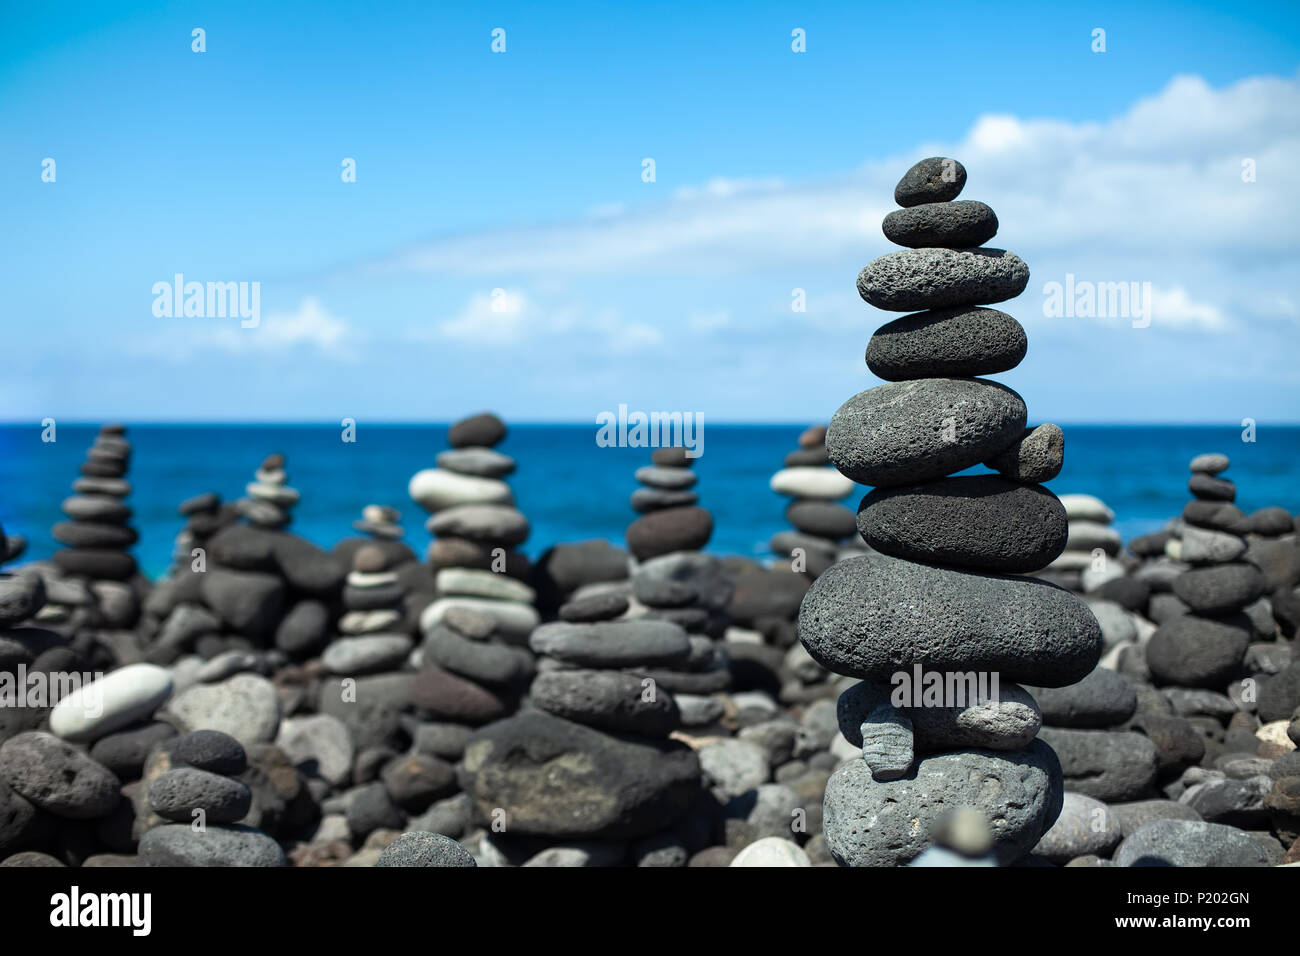 Stones pyramids on pebble beach in Tenerife, Canary Islands, Spain. Concept of harmony and balance - Stock Image